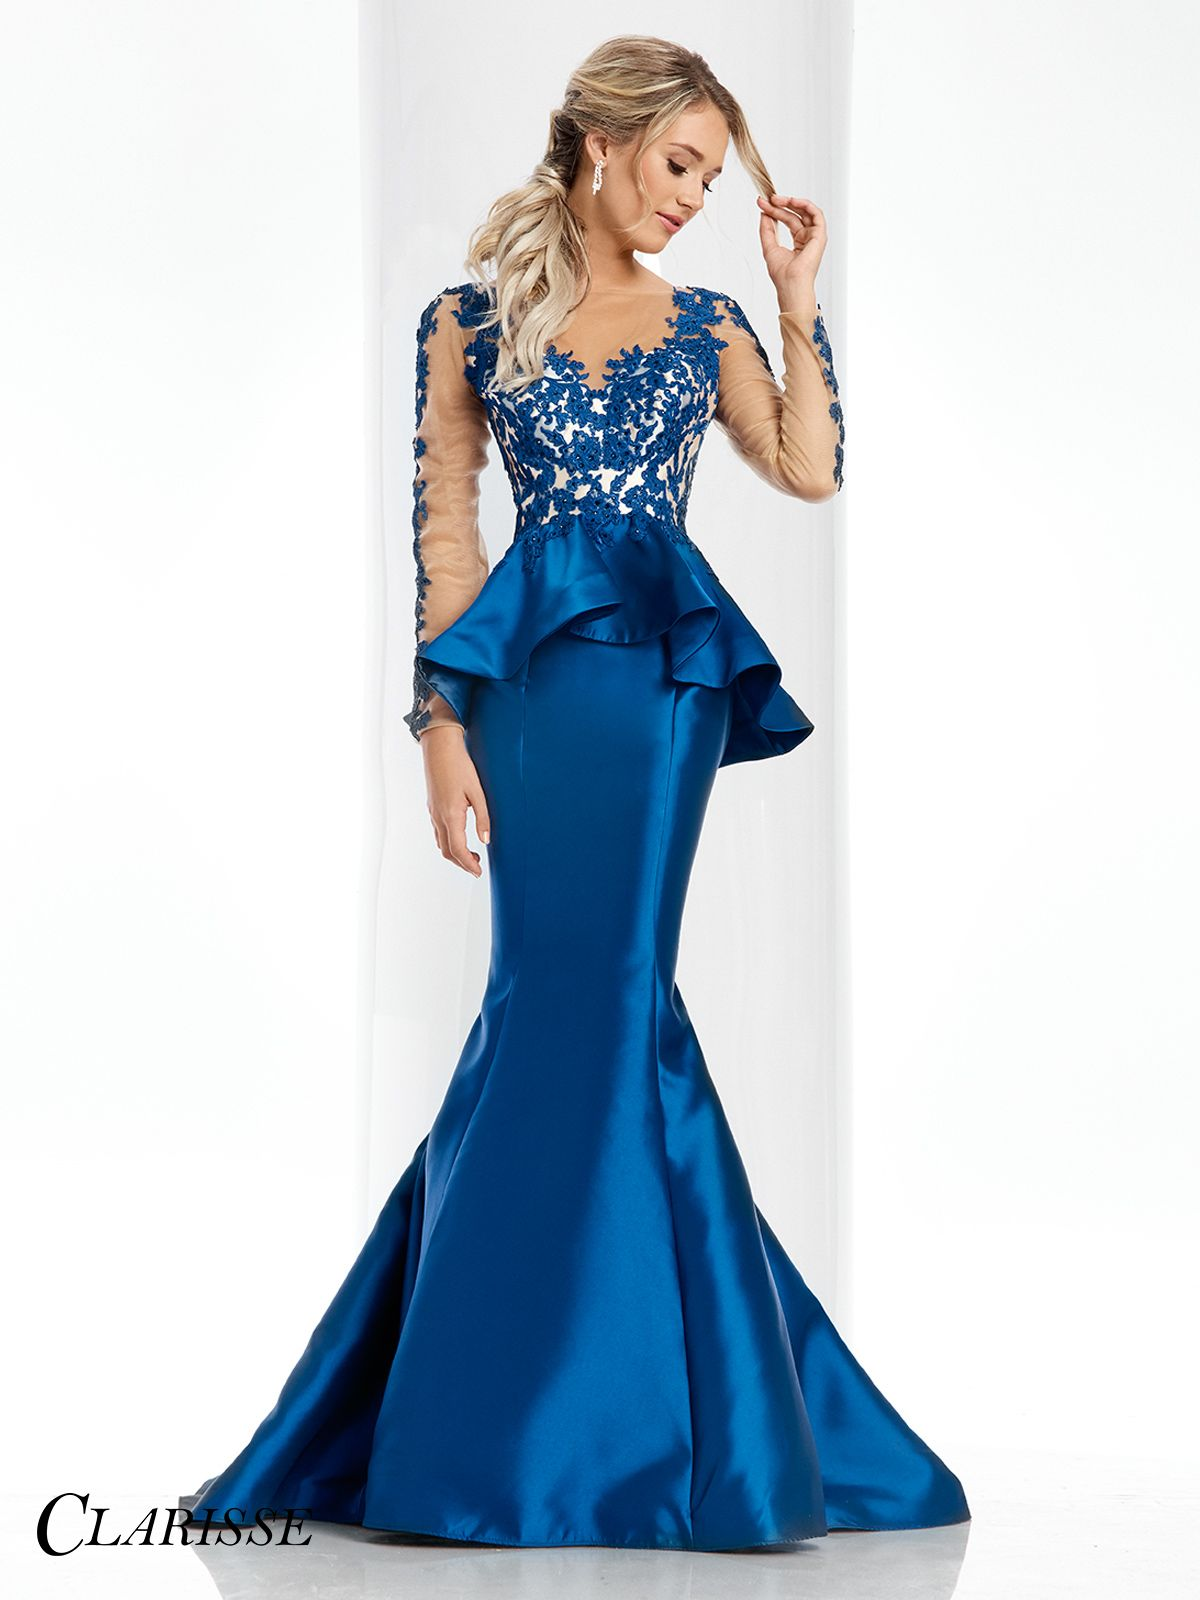 Clarisse couture prom dress floral appliqué with long sleeves